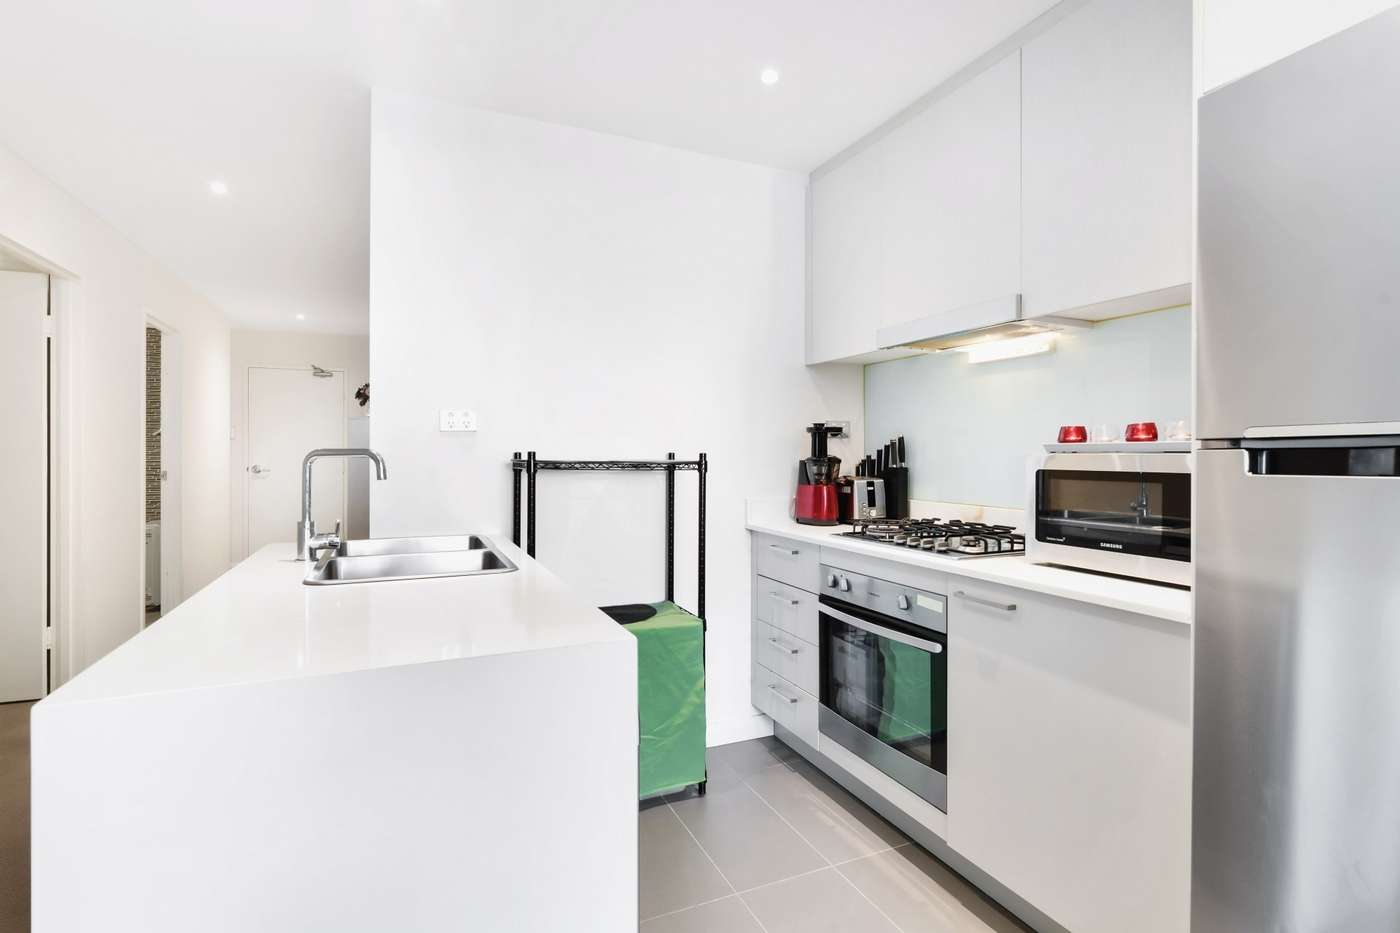 Main view of Homely apartment listing, 6/79-87 Beaconsfield Street, Silverwater, NSW 2128